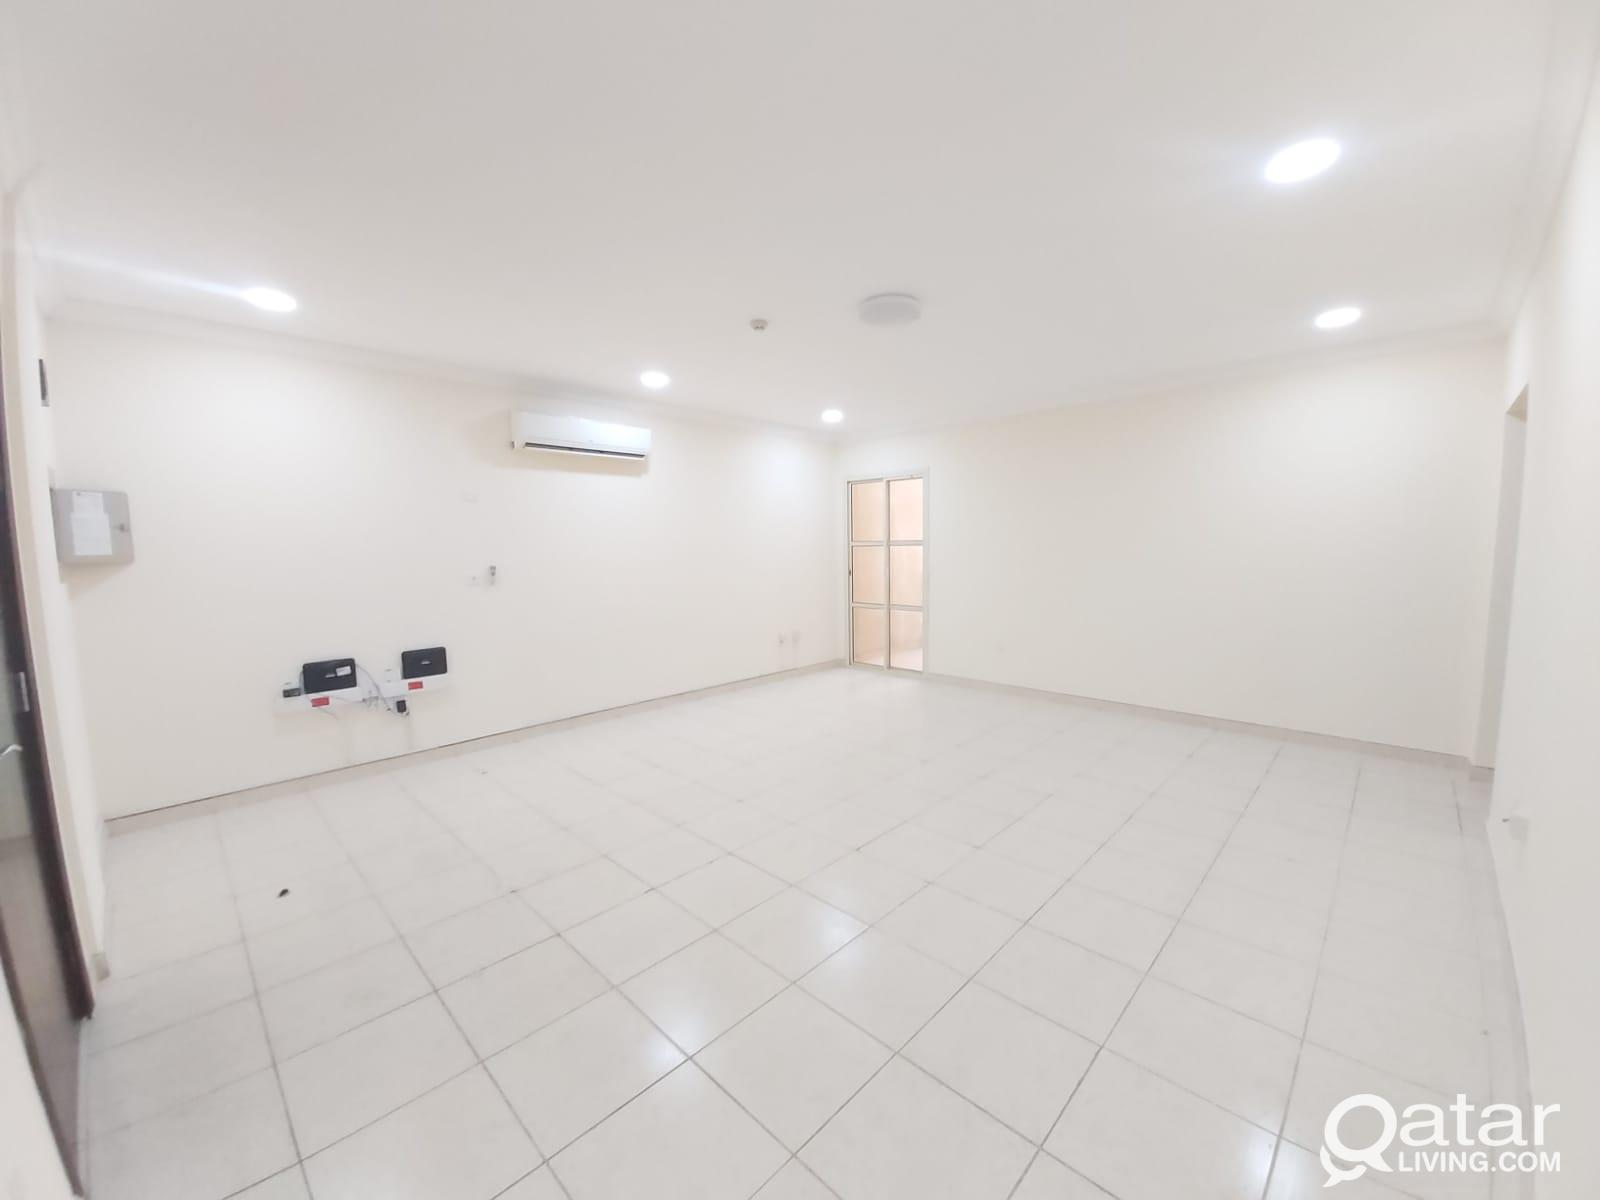 Hot Offer - Spacious 3 BHK and 2 BHK Apartment For